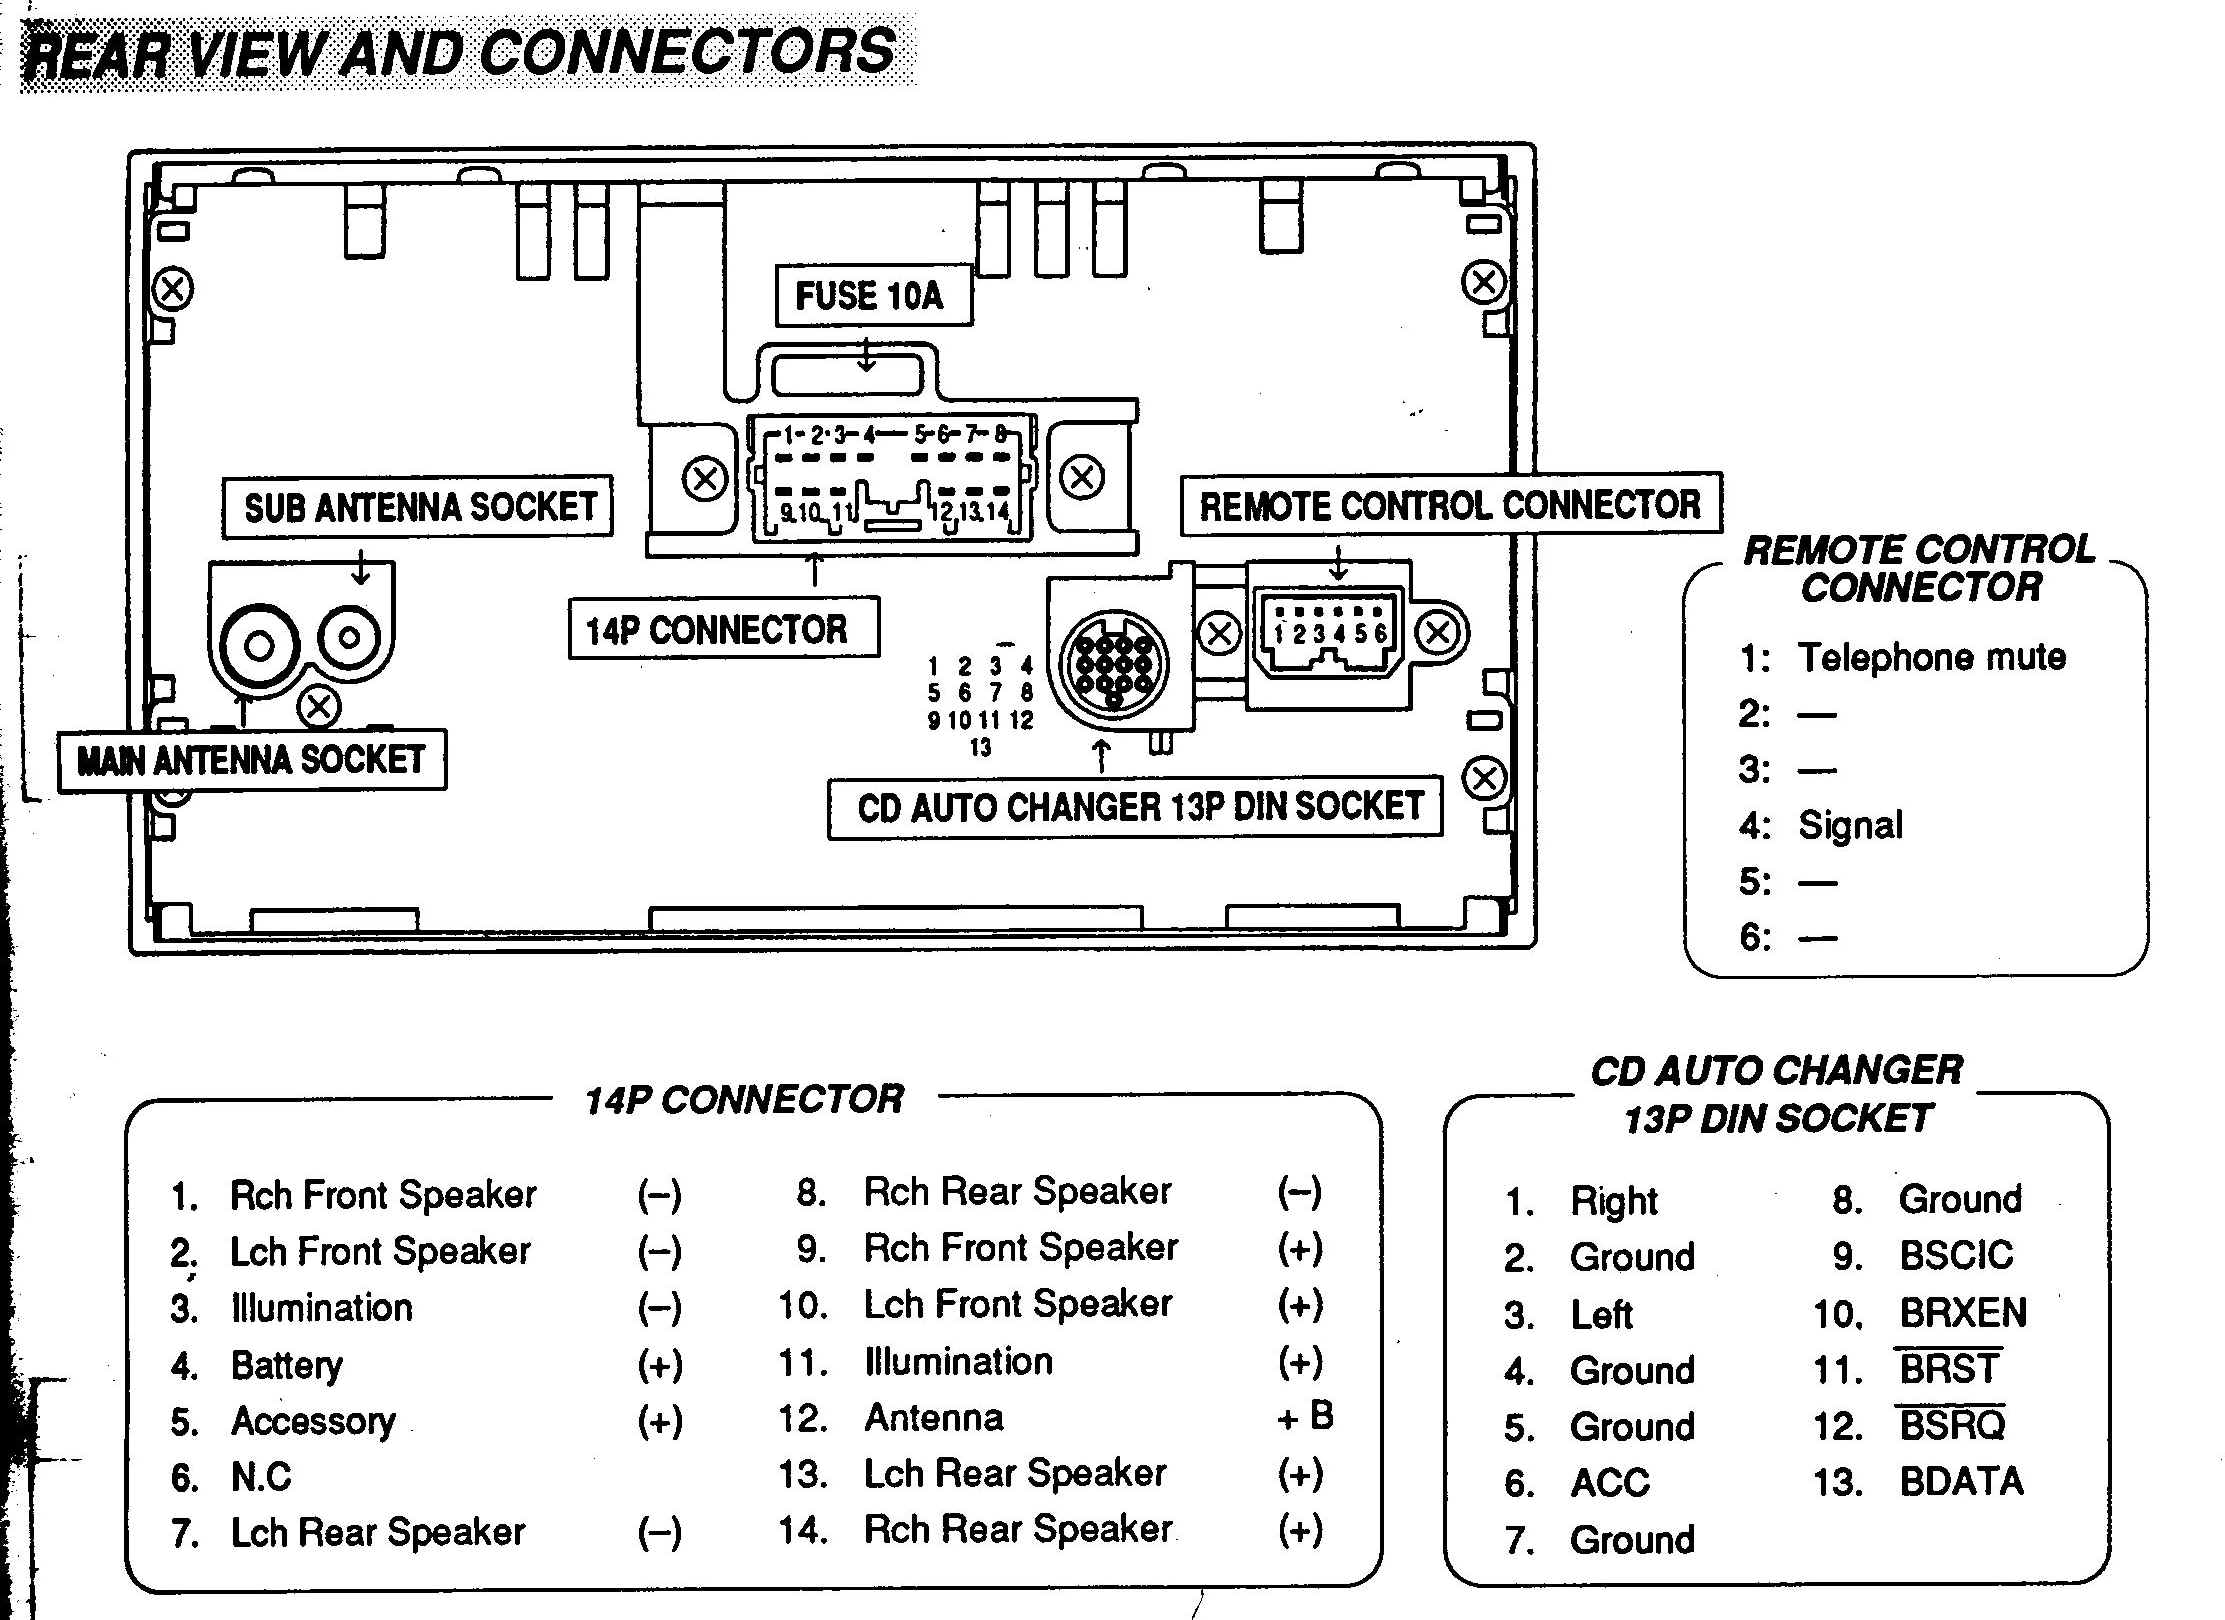 WireHarnessMit121003 car audio wire diagram codes mitsubishi factory car stereo mitsubishi 380 wiring diagrams at crackthecode.co